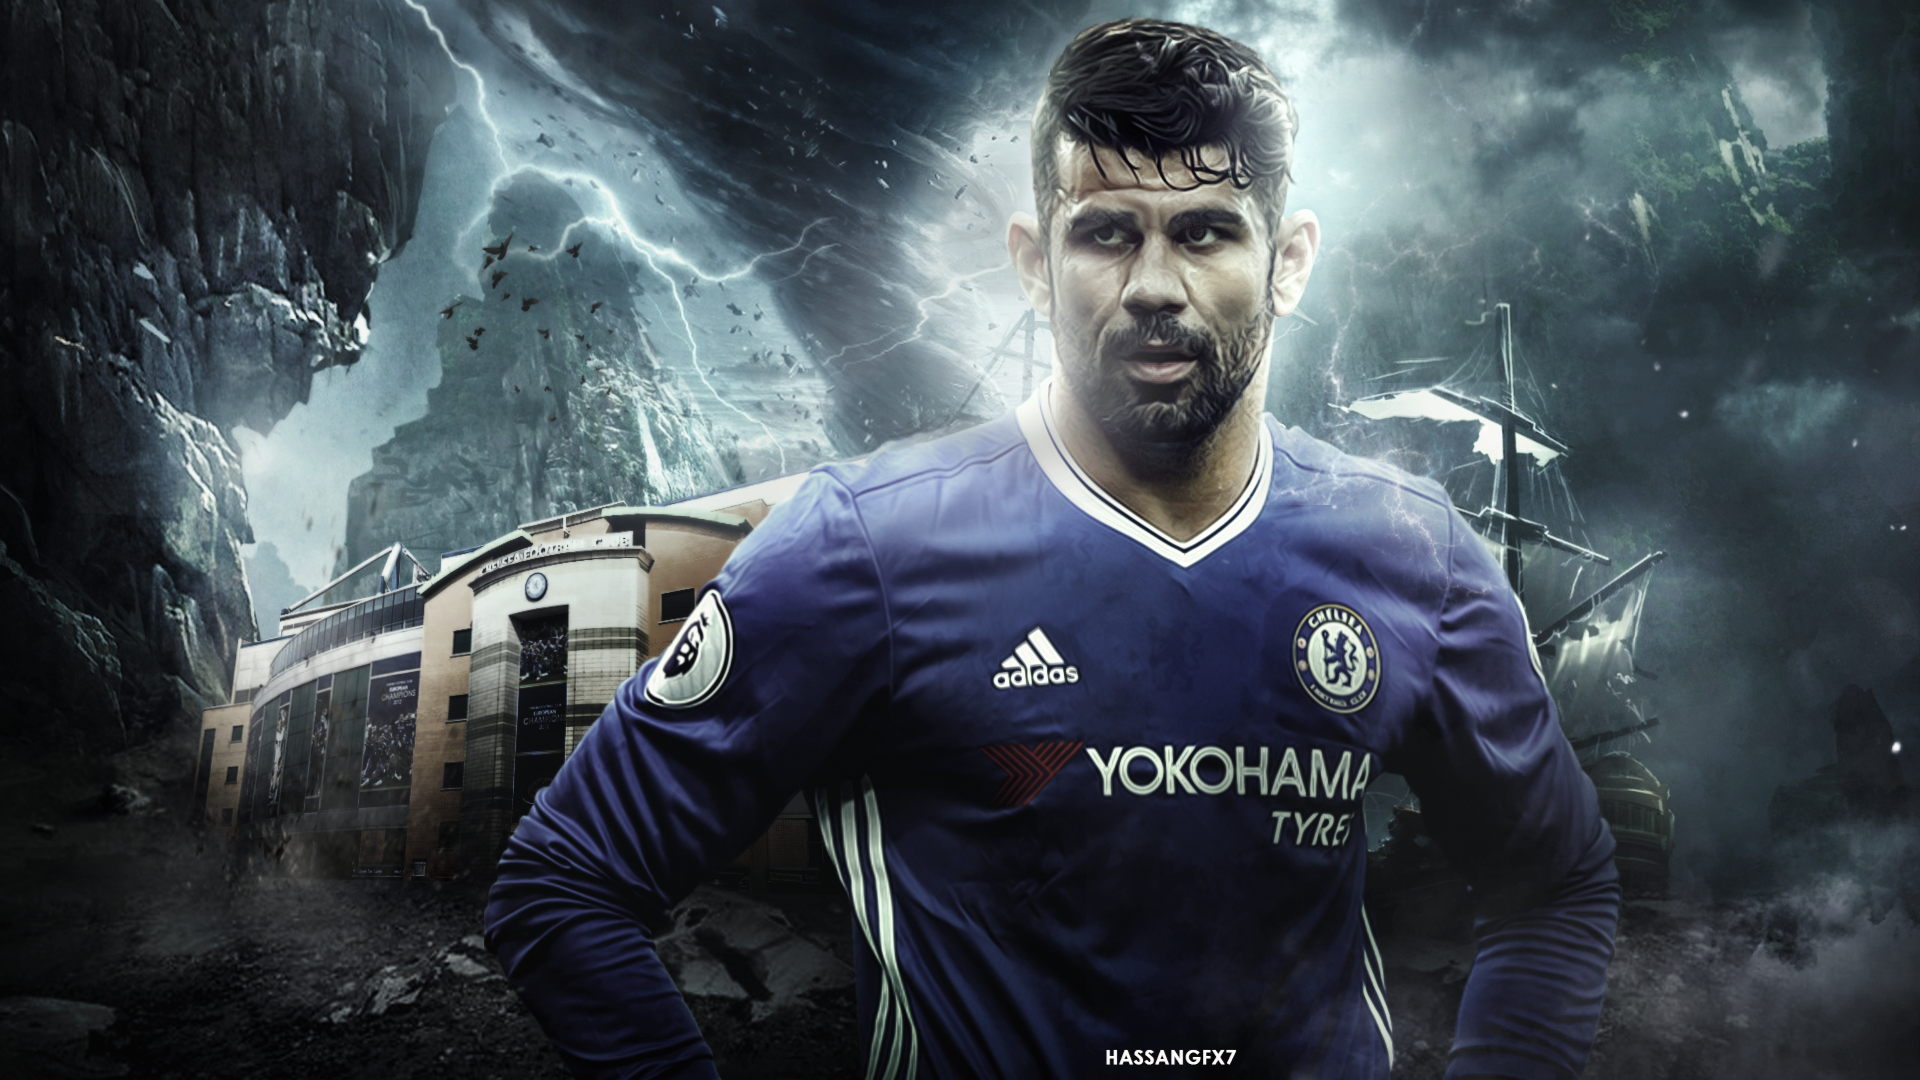 Diego Costa 2016 17 Wallpaper By Hassangfx7 On Deviantart HD Wallpapers Download Free Images Wallpaper [1000image.com]